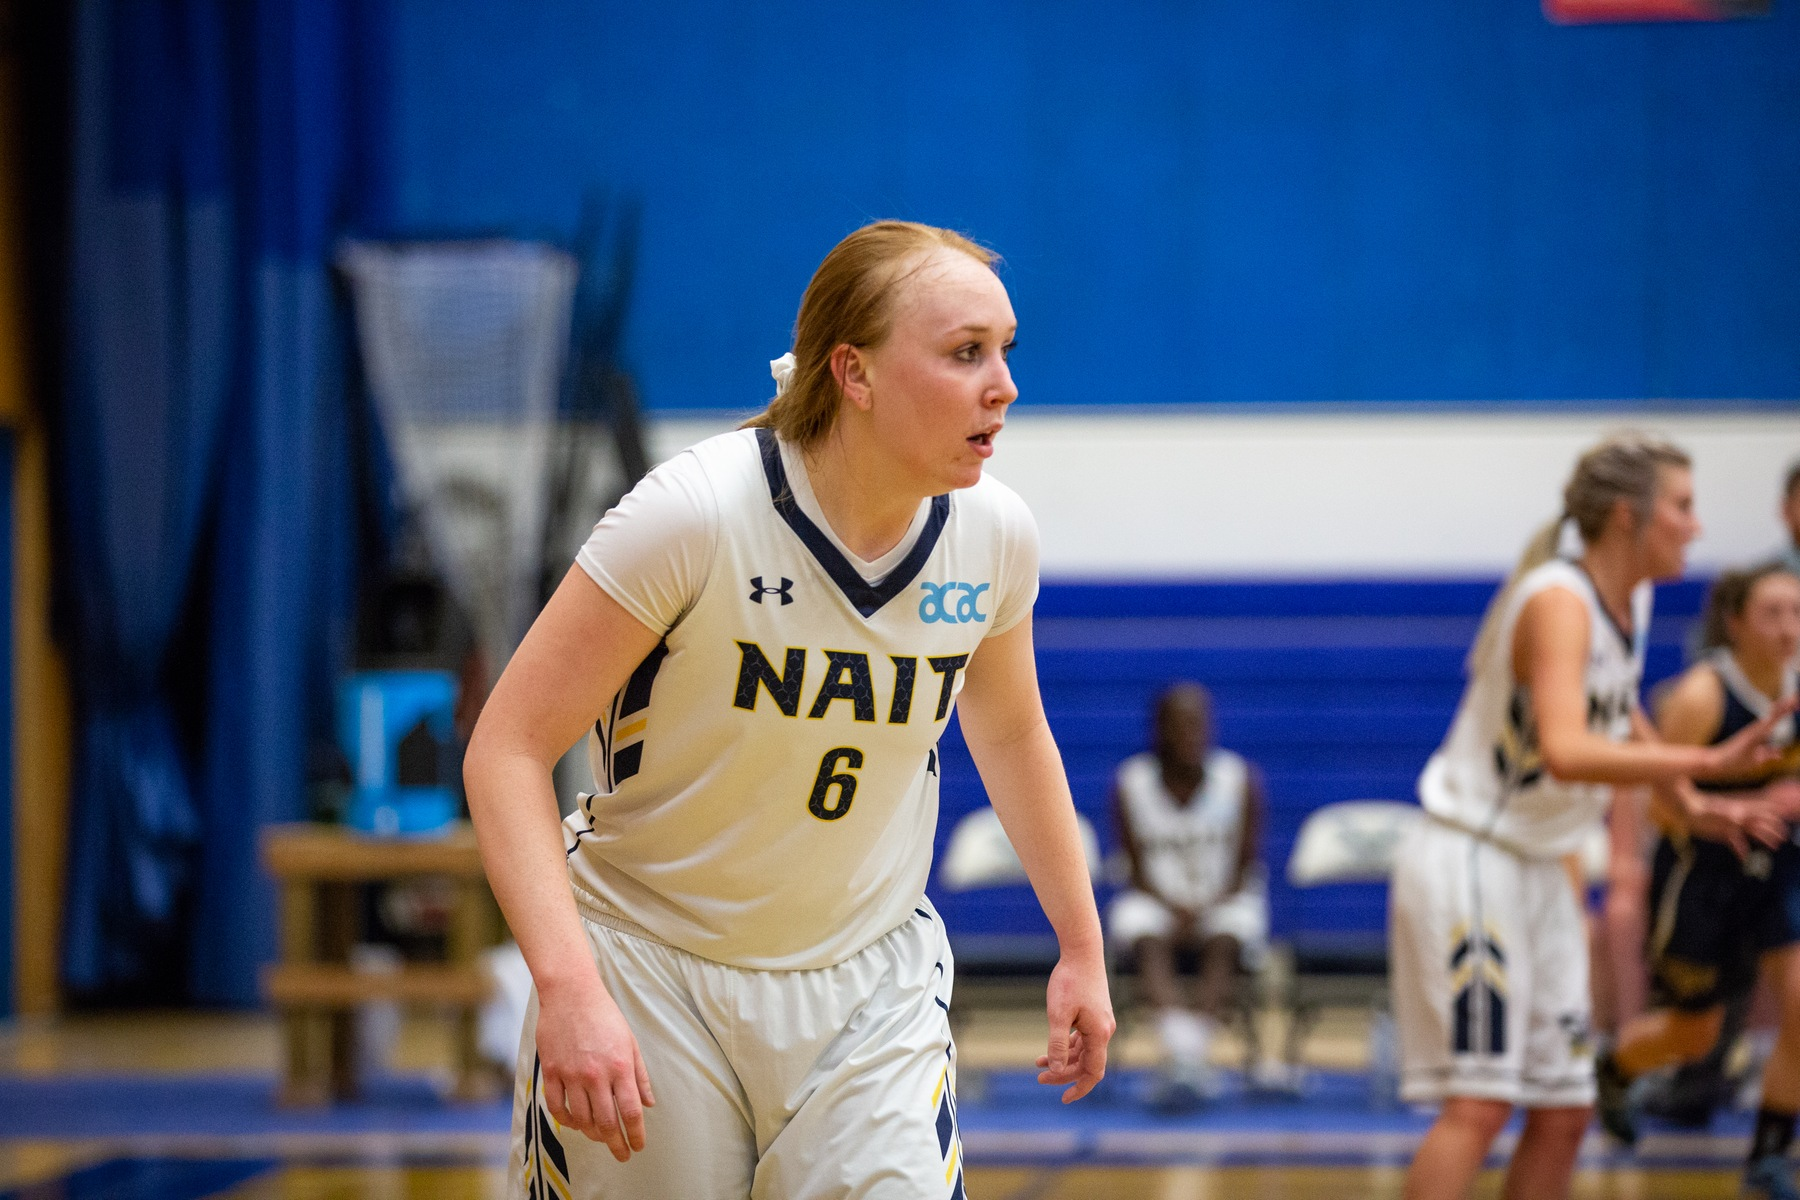 The NAIT Ooks women's basketball team defeated GPRC Wolves 78-61.